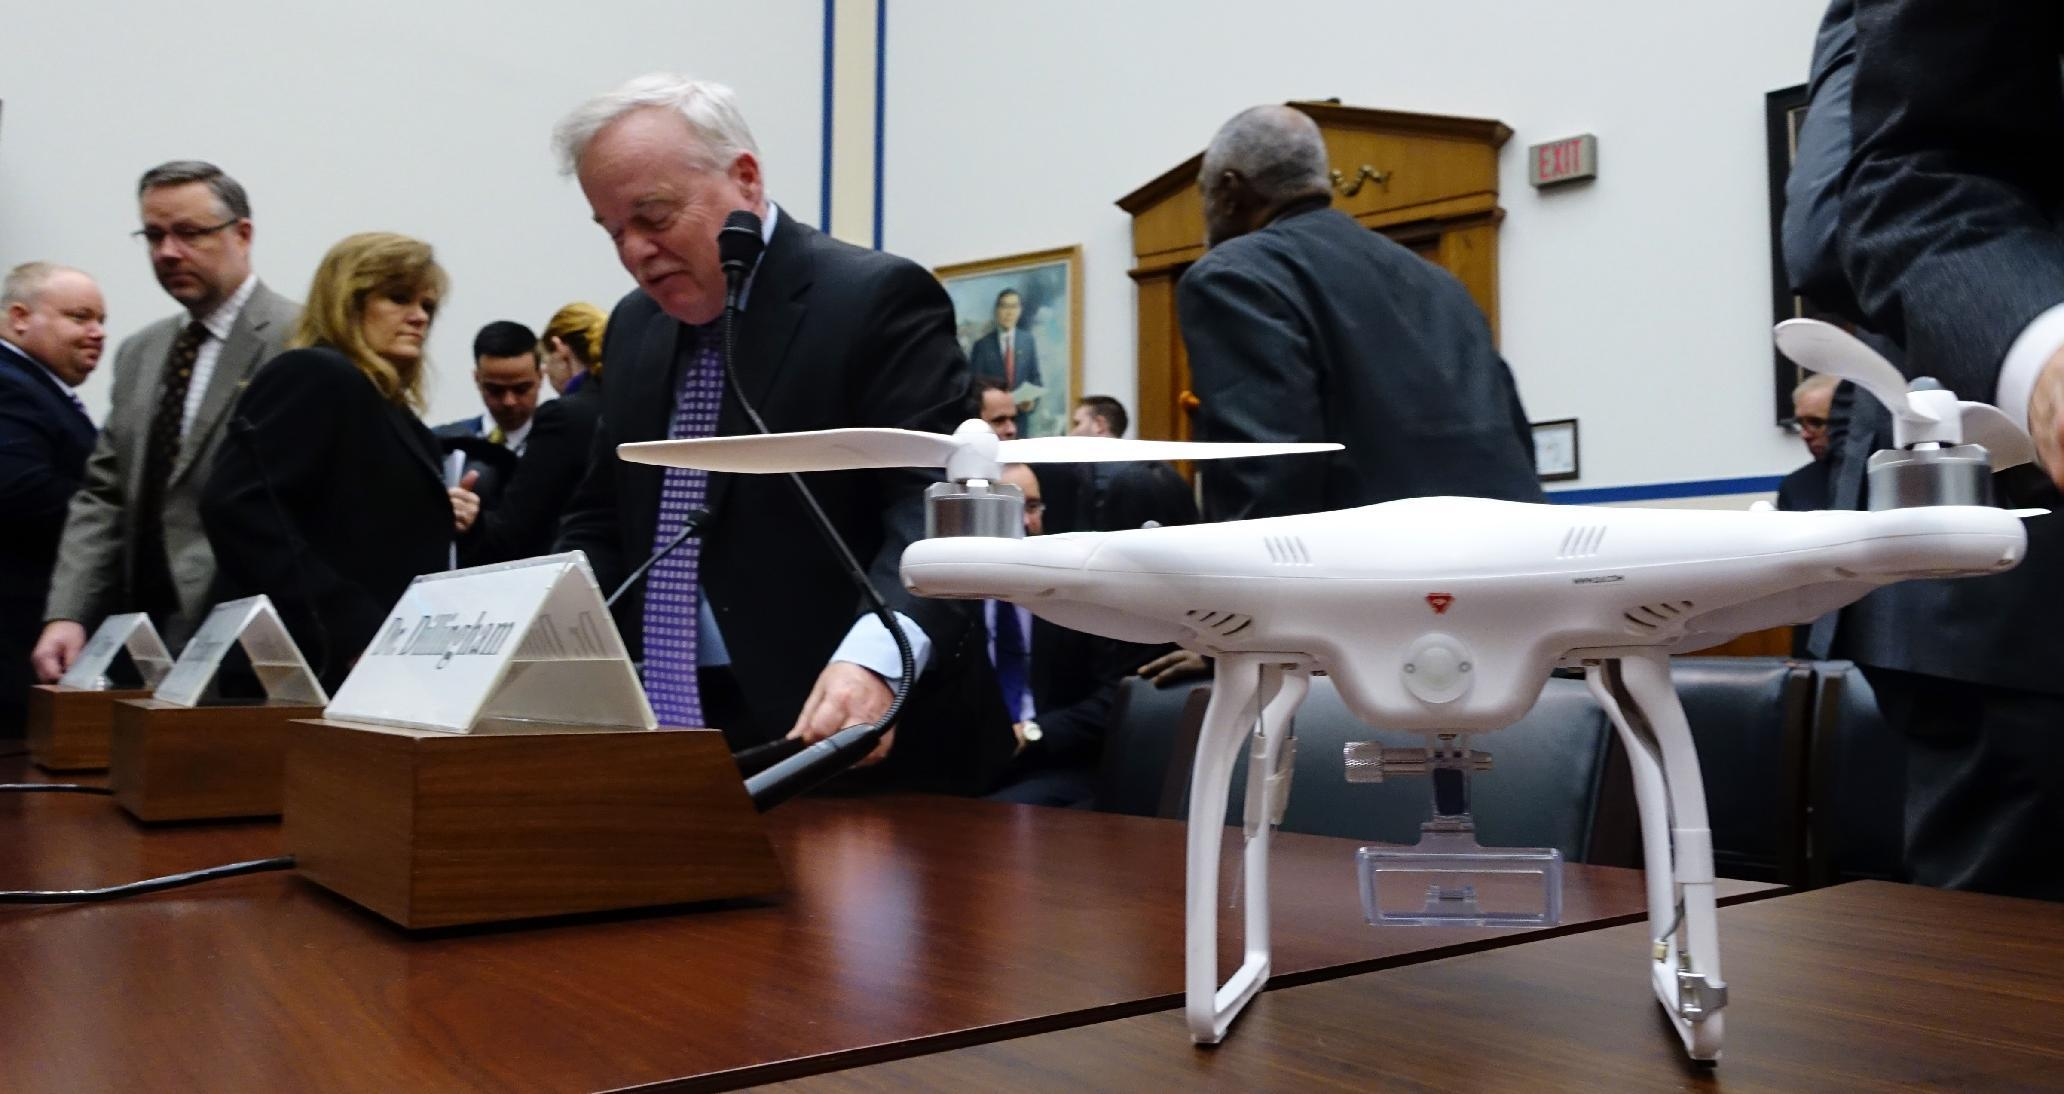 A DJI Phantom 2 drone rests on a table after a hearing on safety issues and the economic potential of civilian drones in Washington DC on December 10, 2014 before a subcomittee of the House Transportation and Infrastructure Committee (AFP Photo/Robert MacPherson)